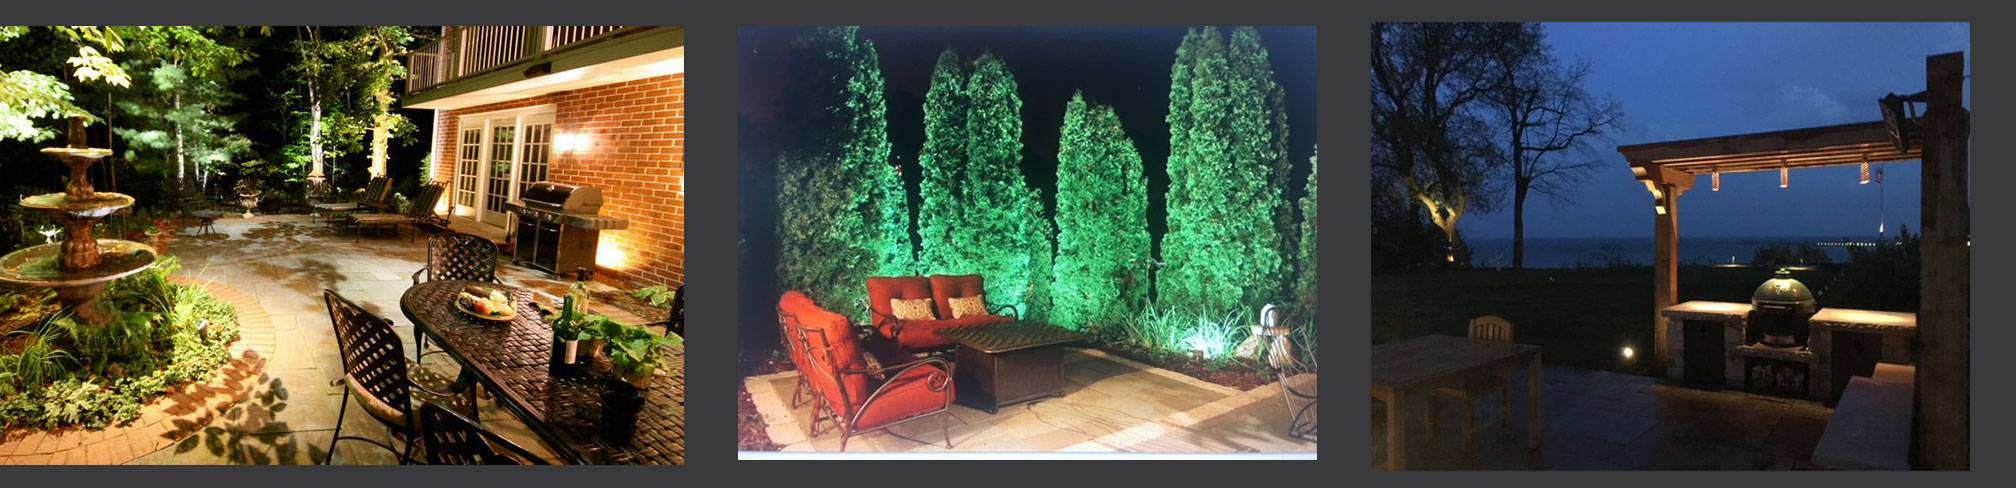 http://landmarklandscapes.pro/photo-gallery/design/